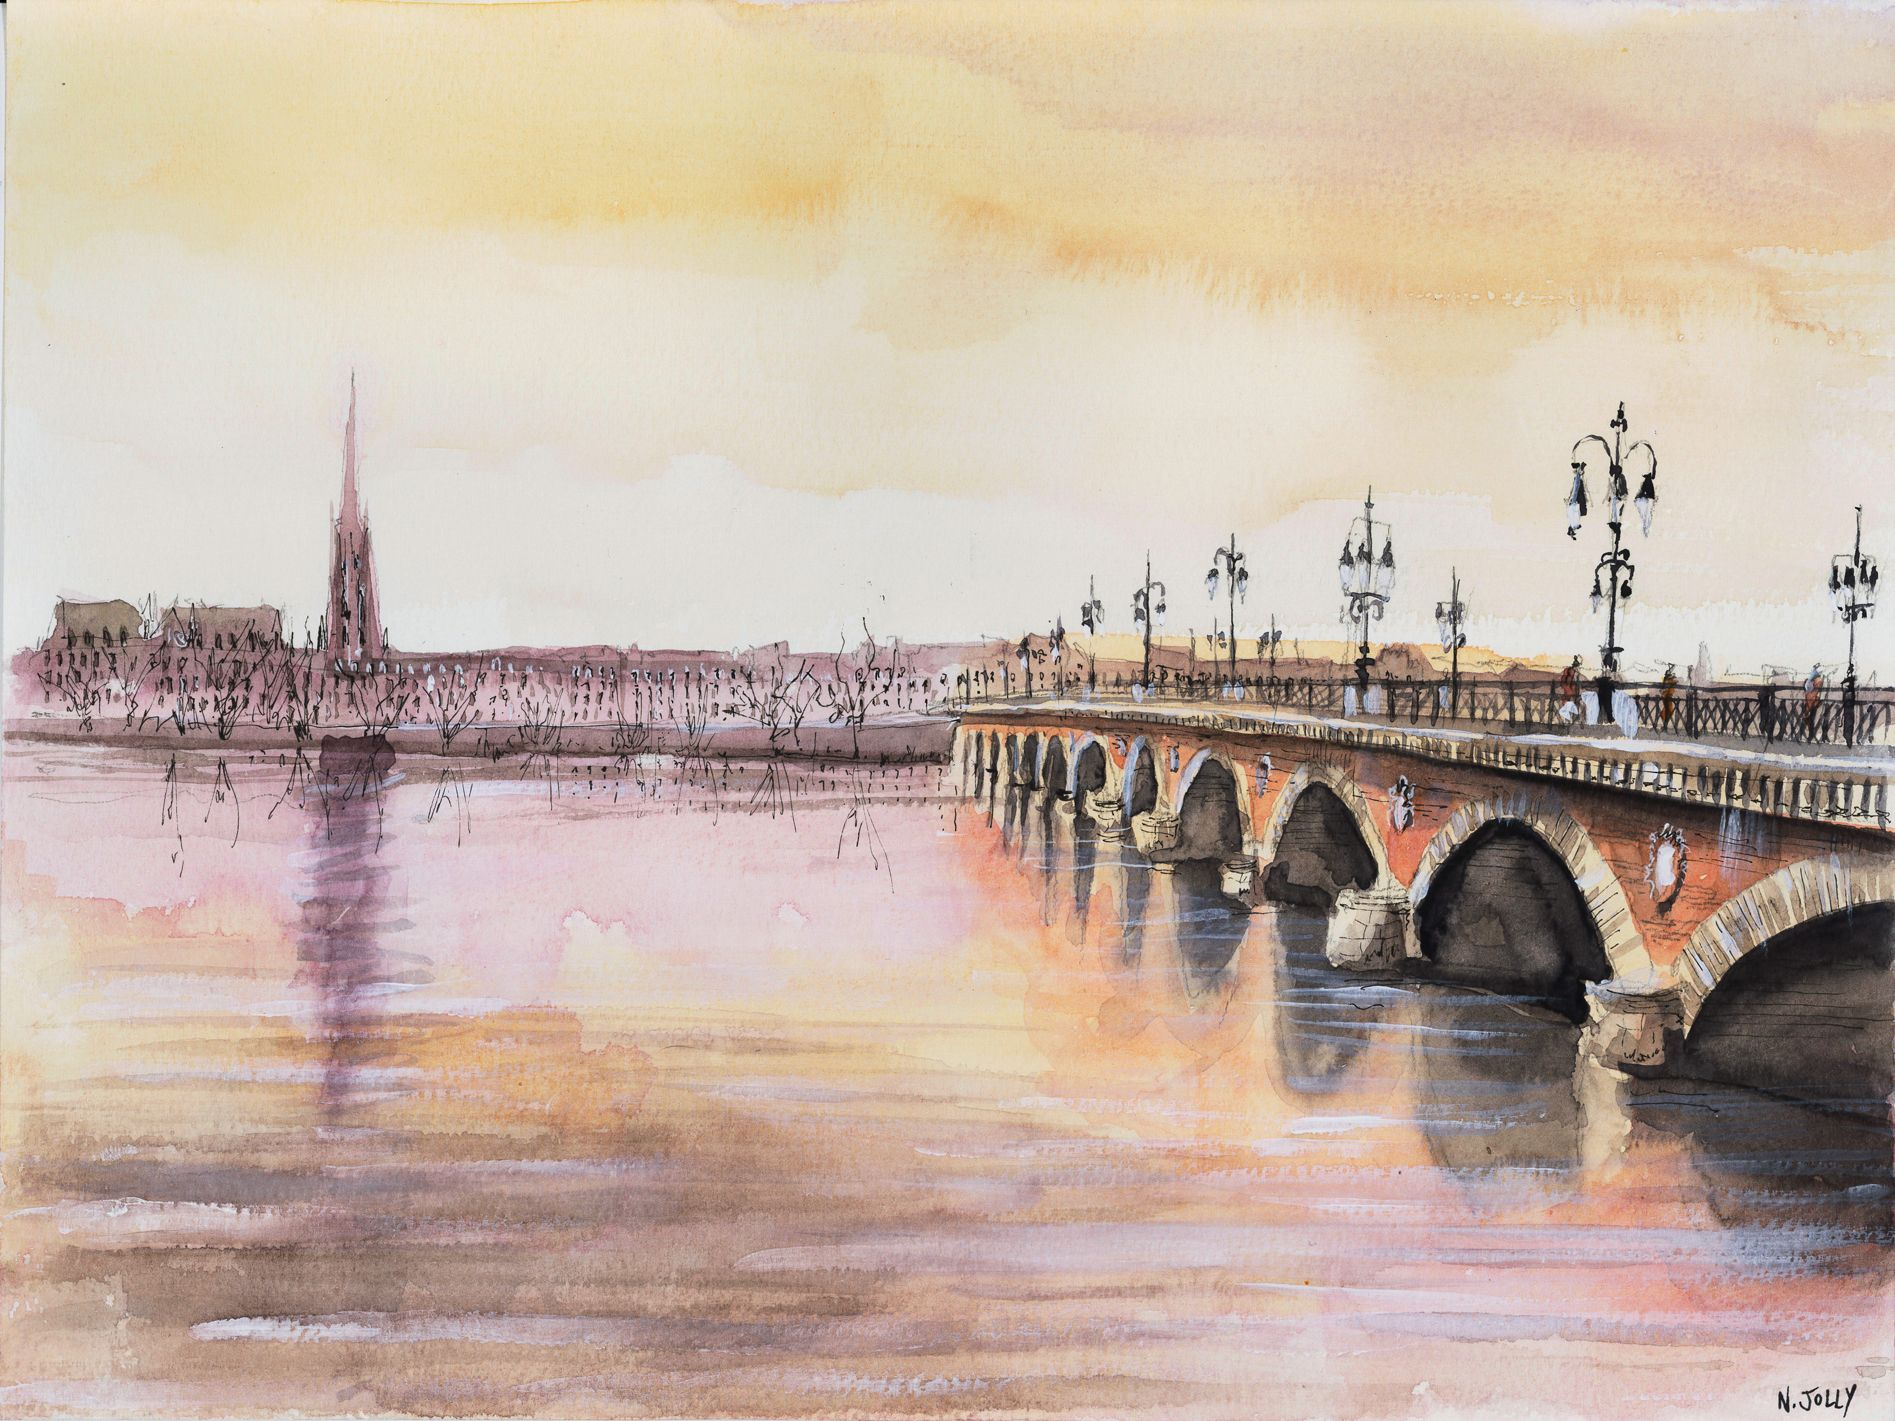 le pont de pierre bordeaux repr sent l 39 aquarelle dessins faire pinterest ponts. Black Bedroom Furniture Sets. Home Design Ideas